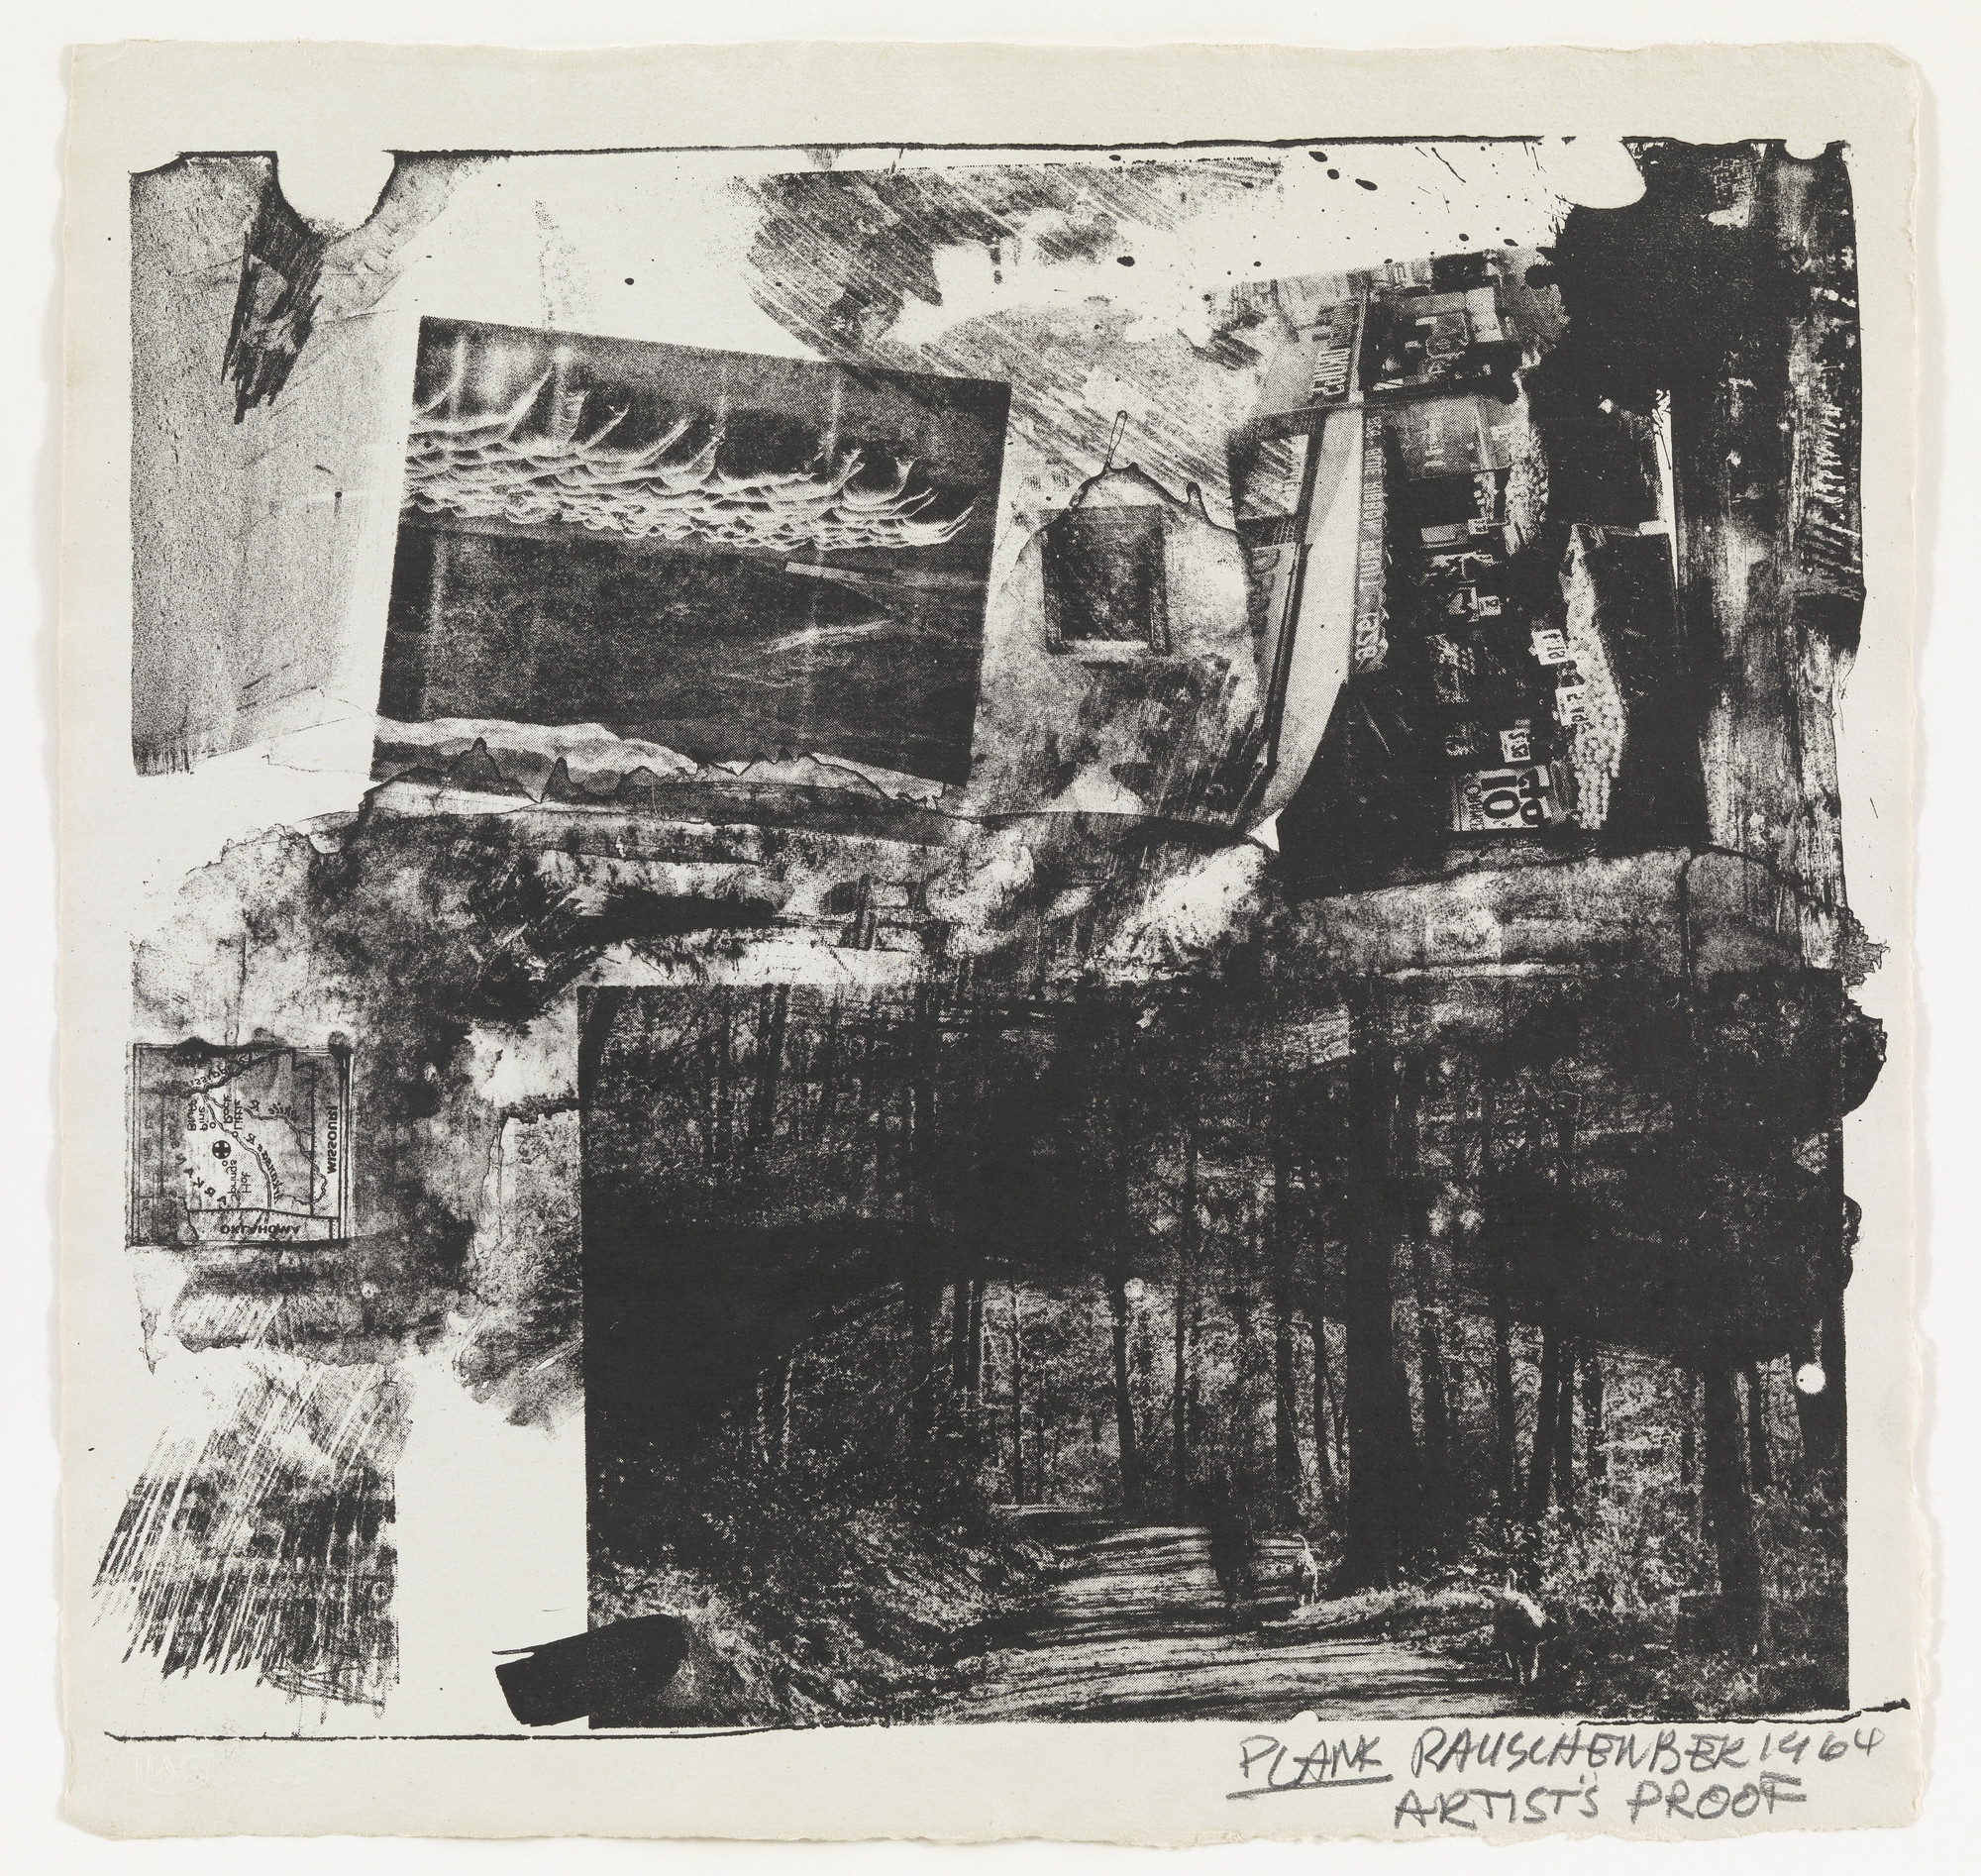 Robert Rauschenberg. Plank, supplementary plate for the deluxe edition of the illustrated book, Rauschenberg: XXXIV Drawings for Dante's Inferno. 1964